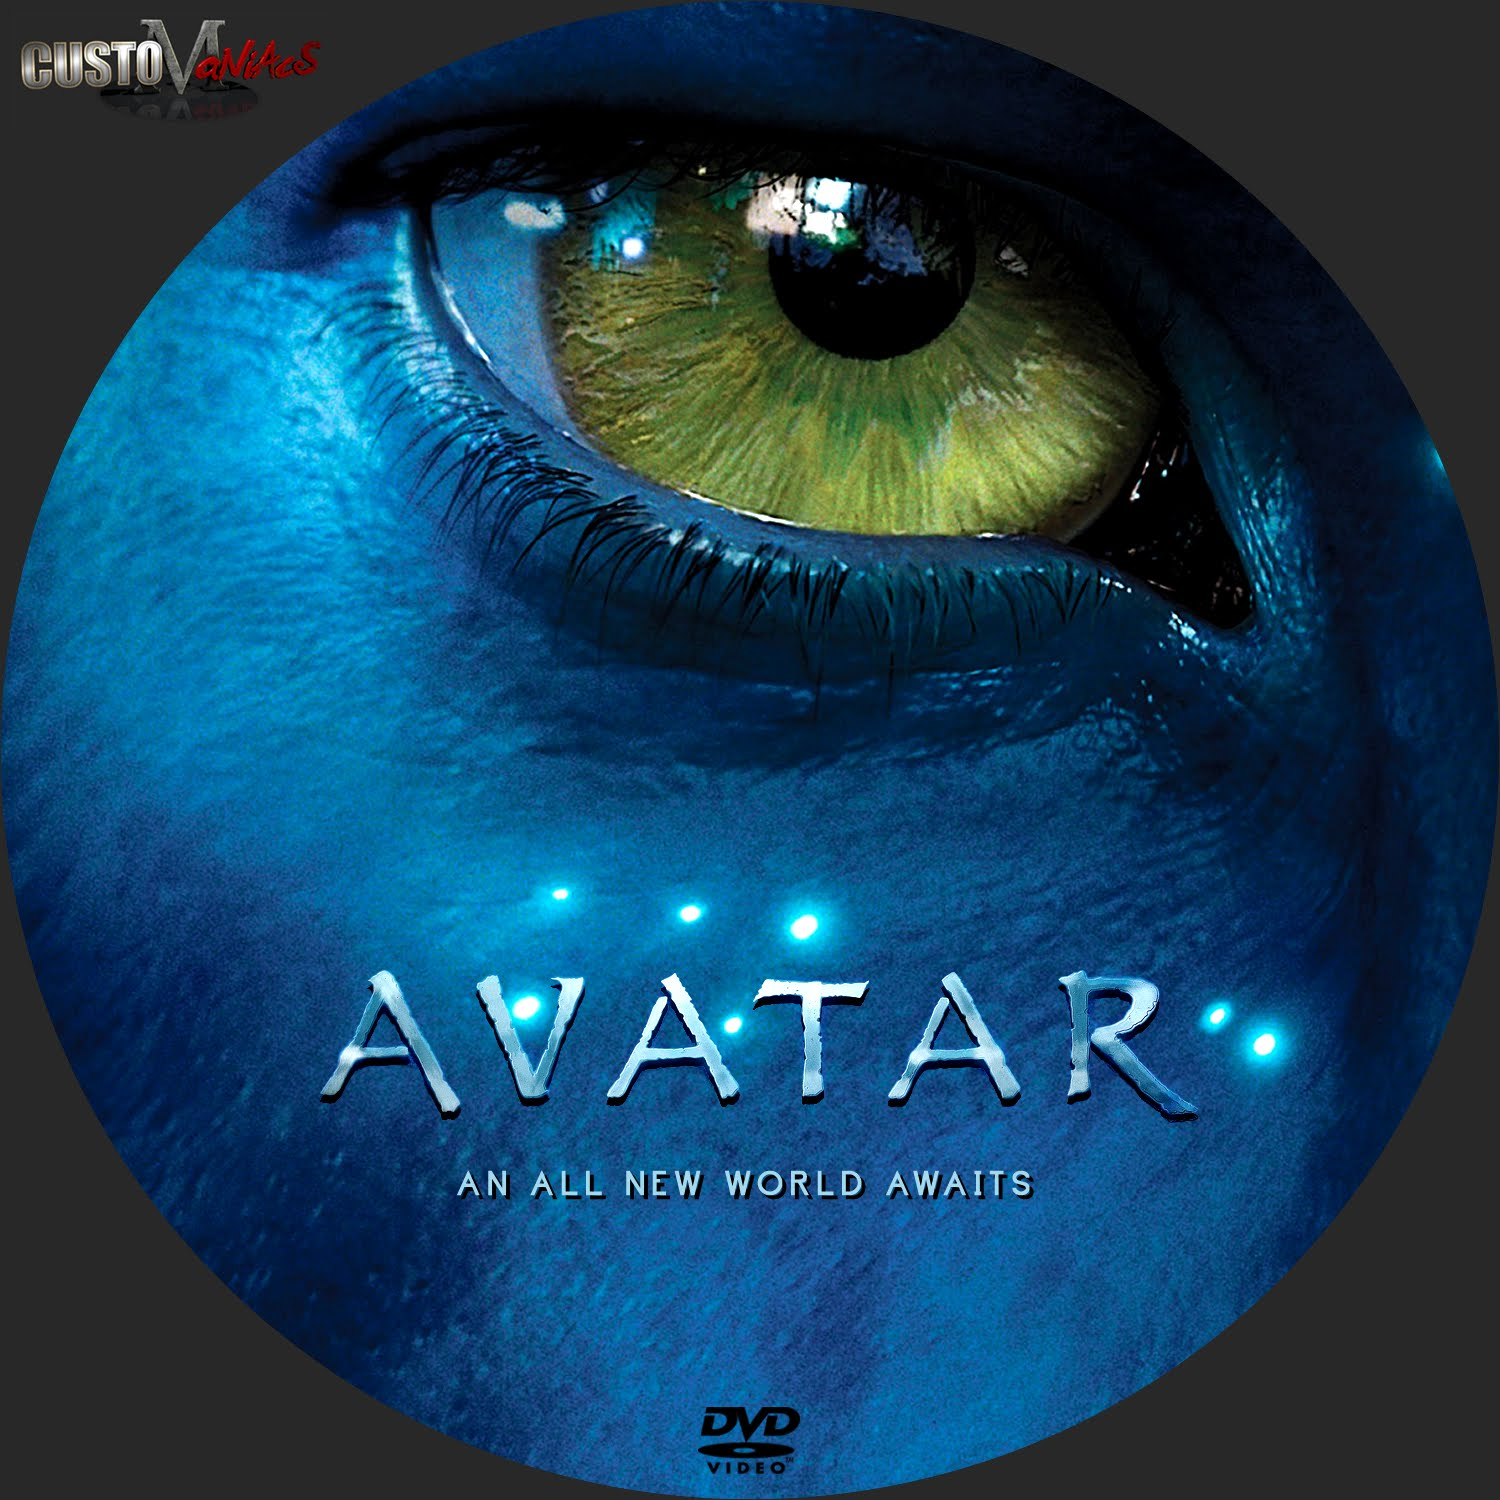 DVD COVERS AND LABELS: Avatar